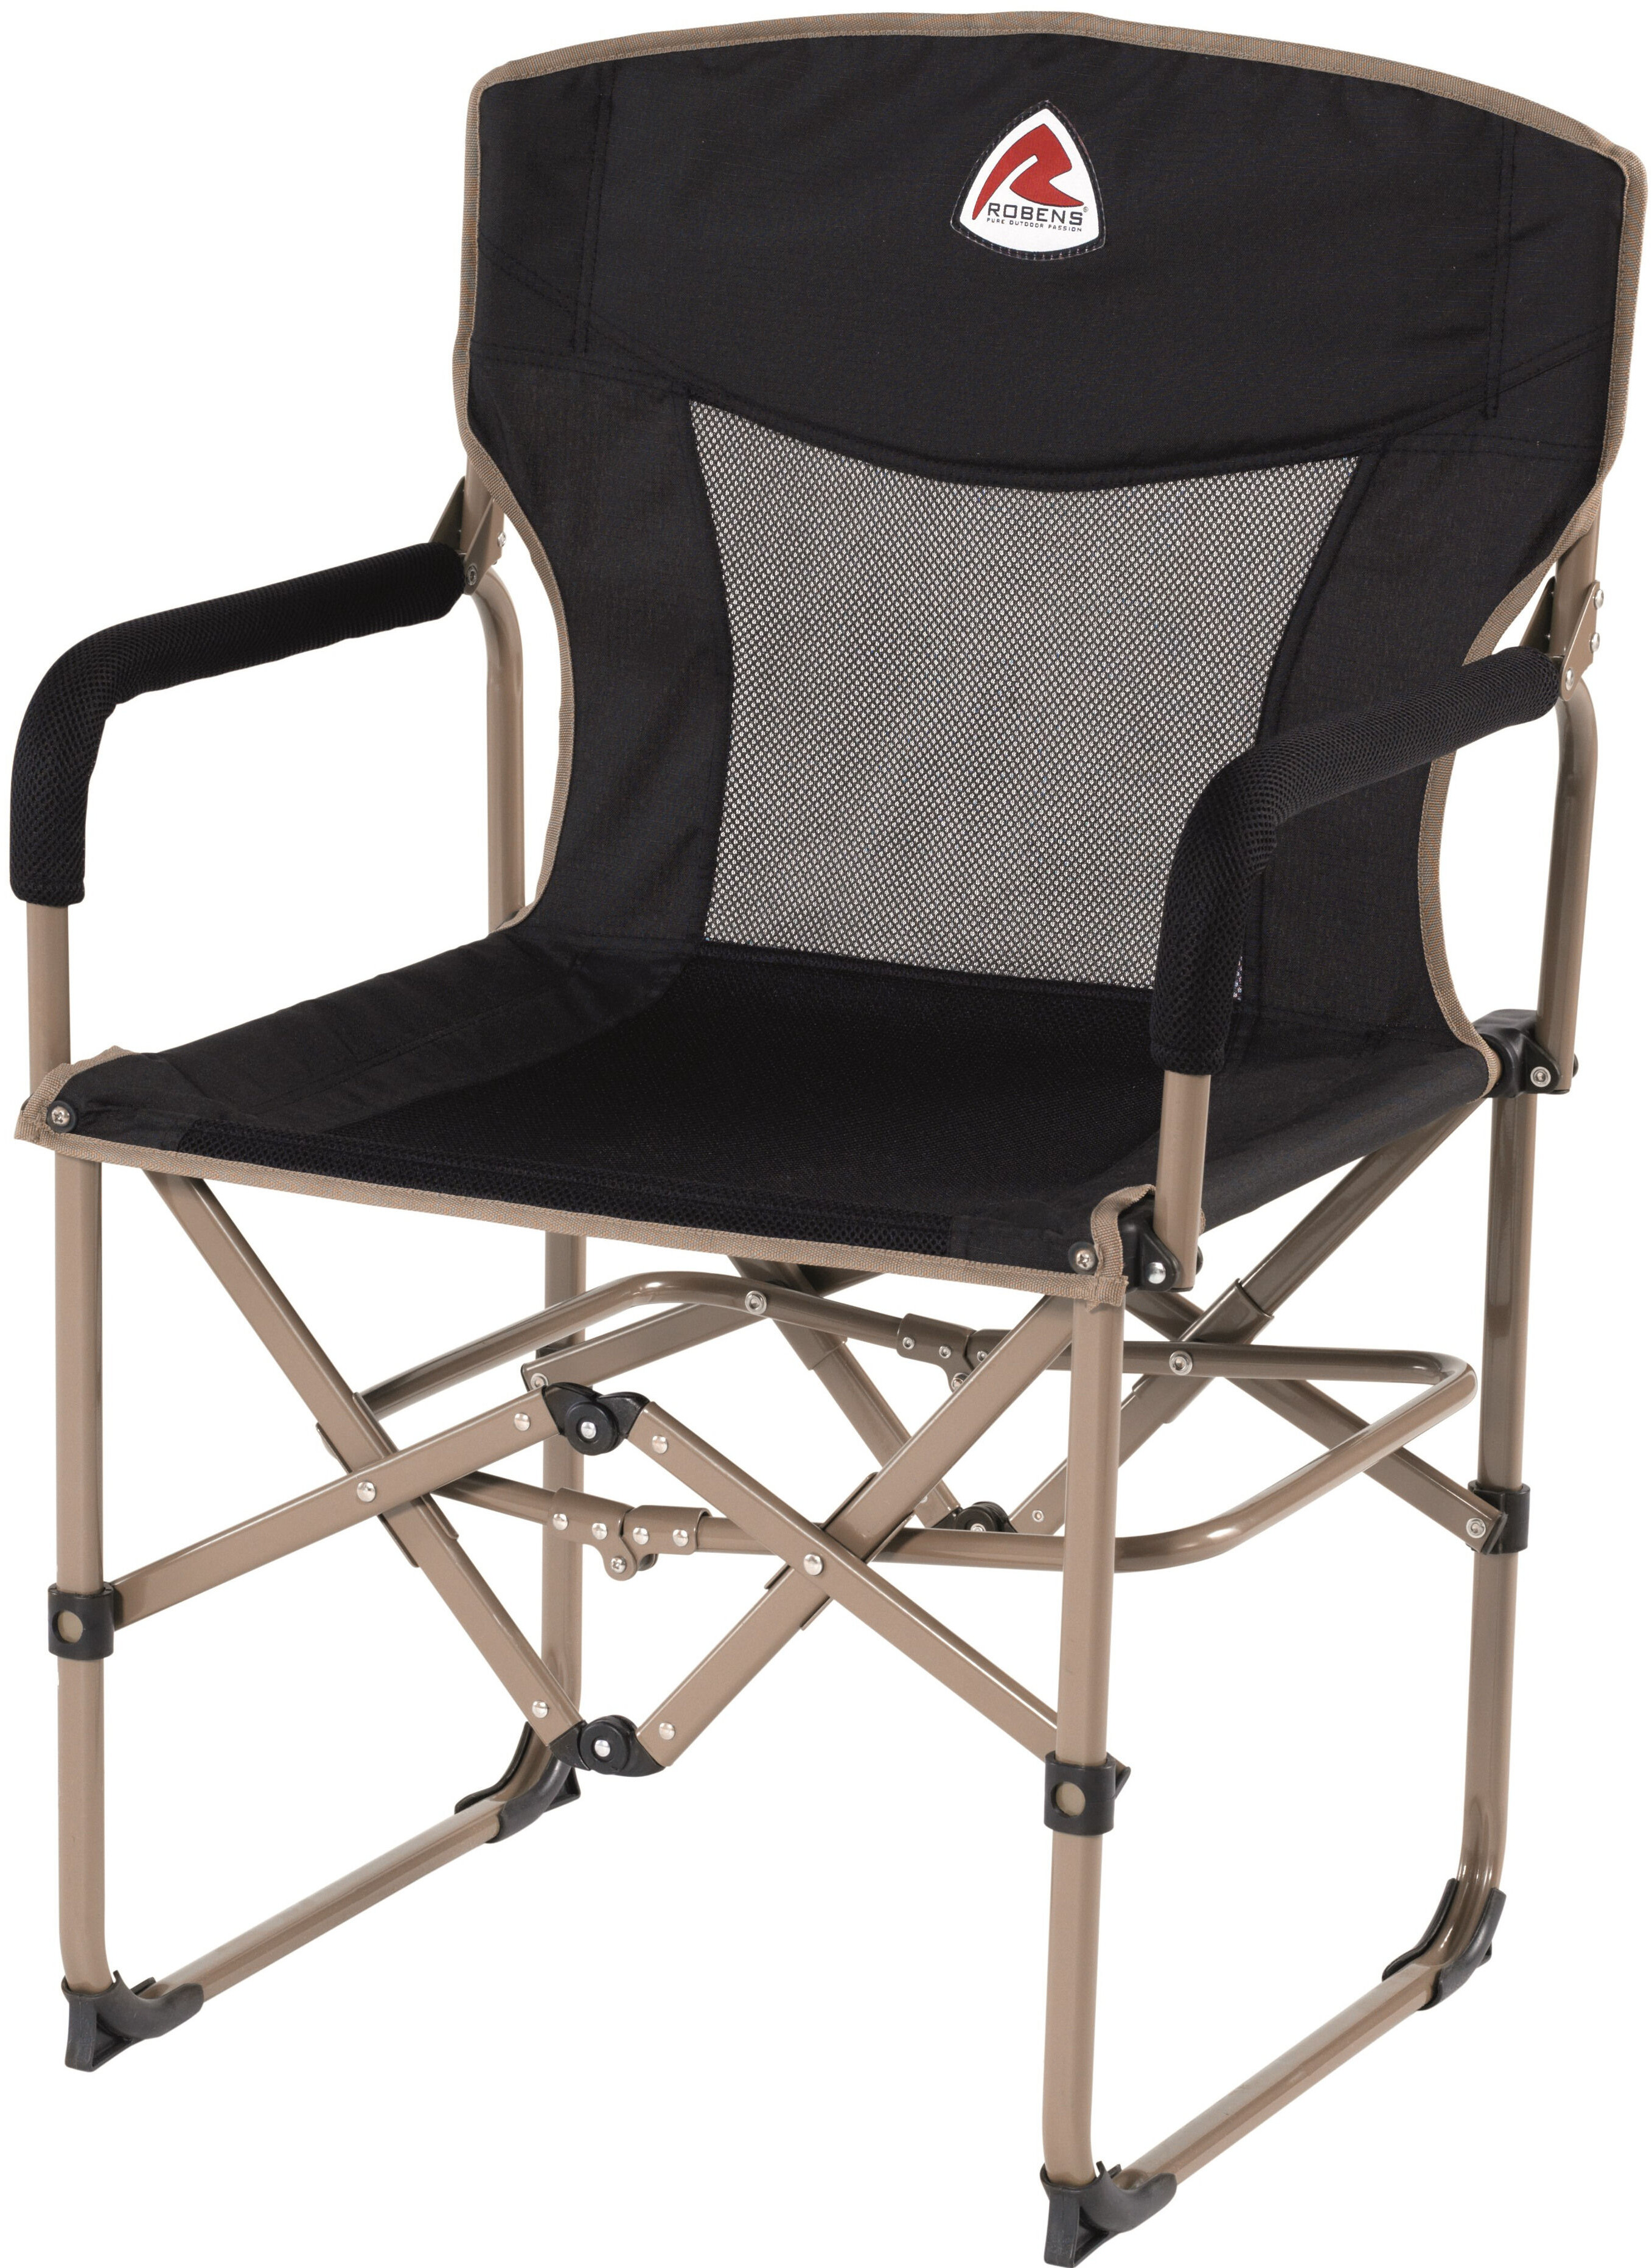 Robens Settler Folding Chair At Addnature